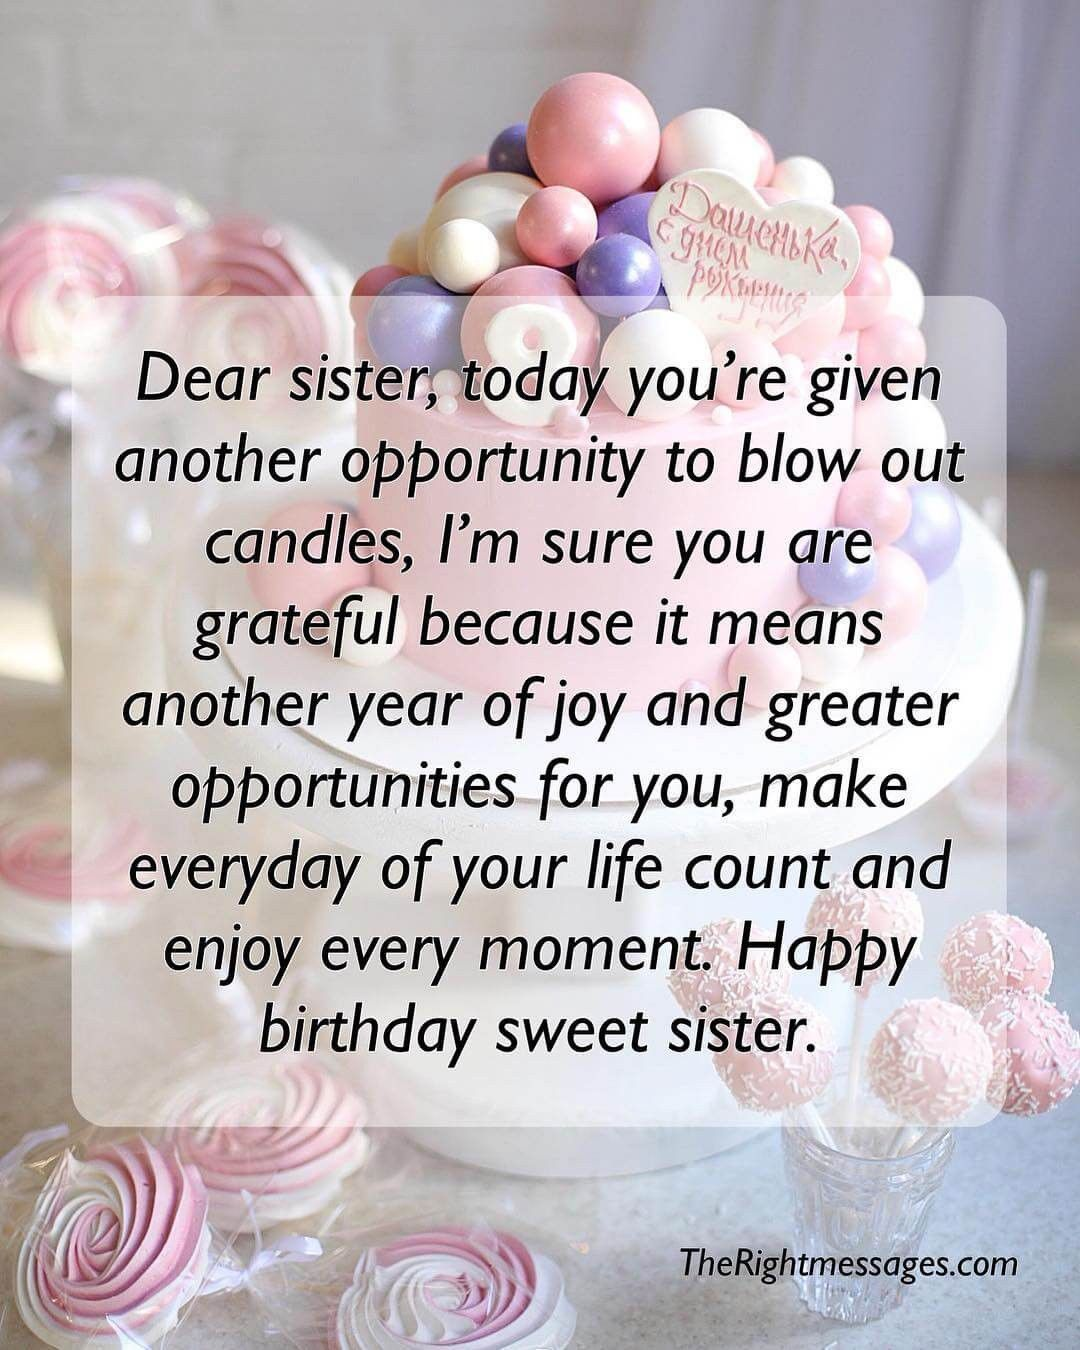 Looking For For Inspiration For Happy Birthday For Him Check This Out F Birthday Greetings For Sister Birthday Messages For Sister Happy Birthday Sister Quotes